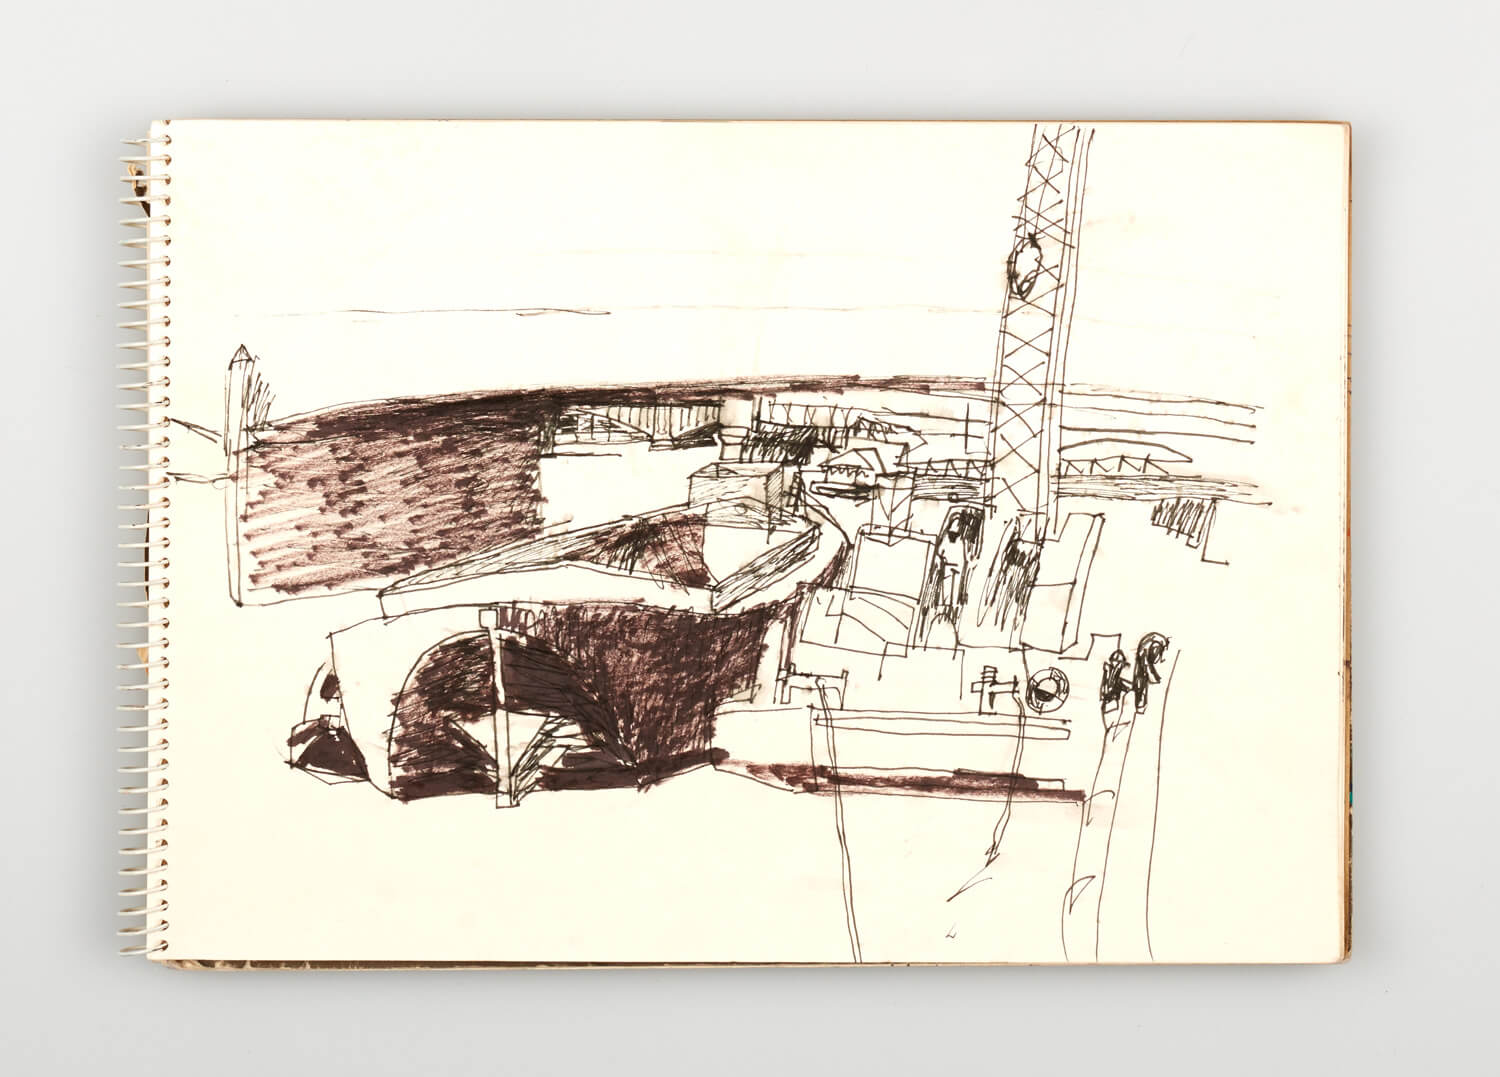 JB224 - Sketch for Bridges on the River Thames - 1992 - 21 x 30 cm - Pen and Ink on cartridge paper